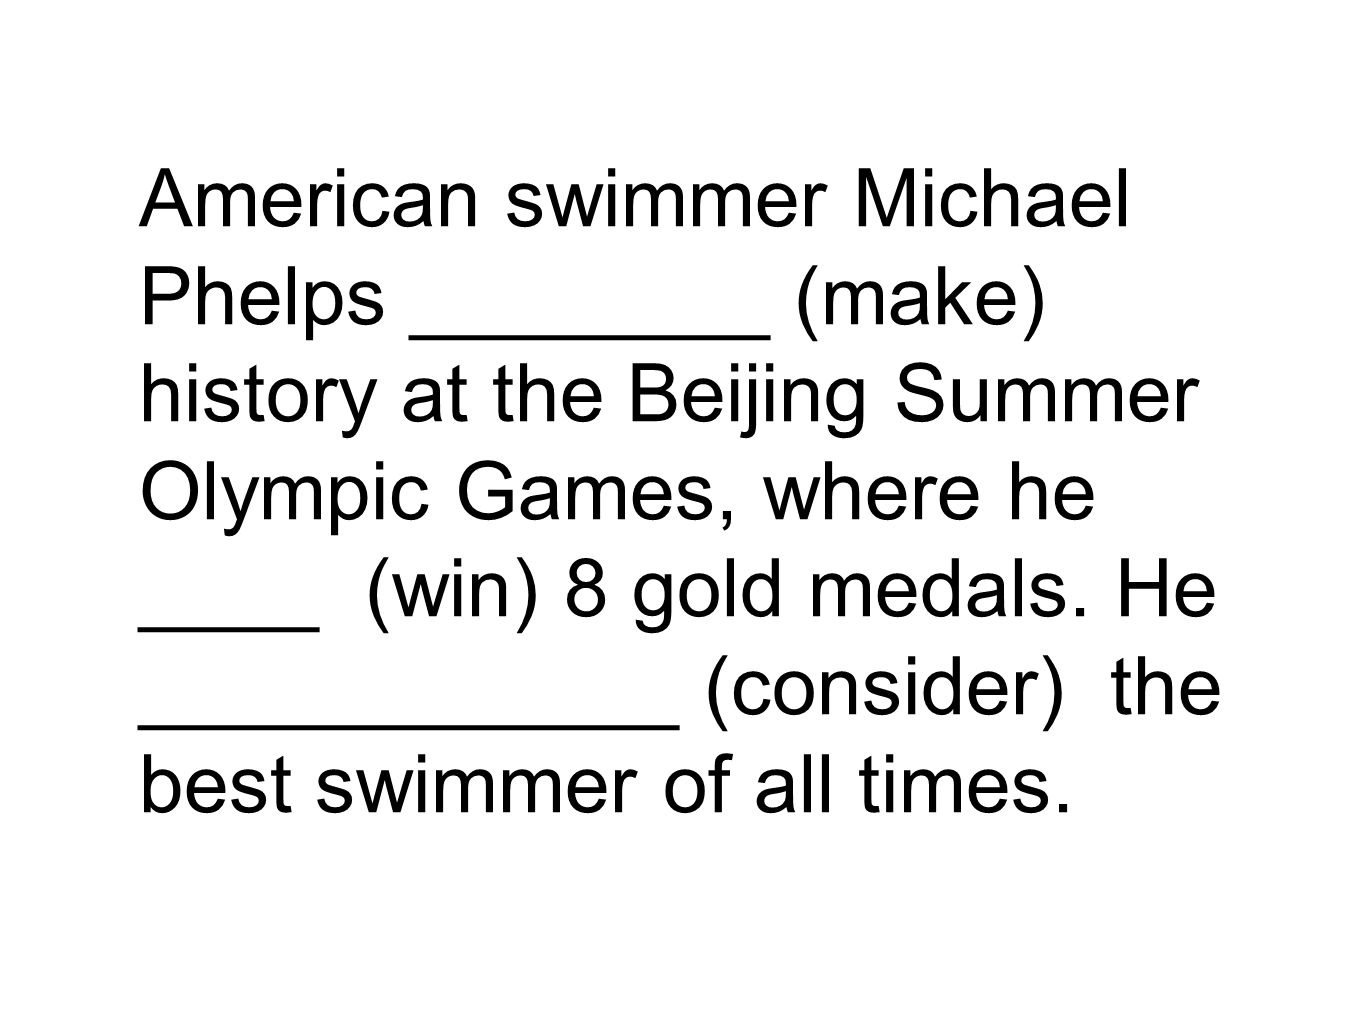 American swimmer Michael Phelps ________ (make) history at the Beijing Summer Olympic Games, where he ____ (win) 8 gold medals.